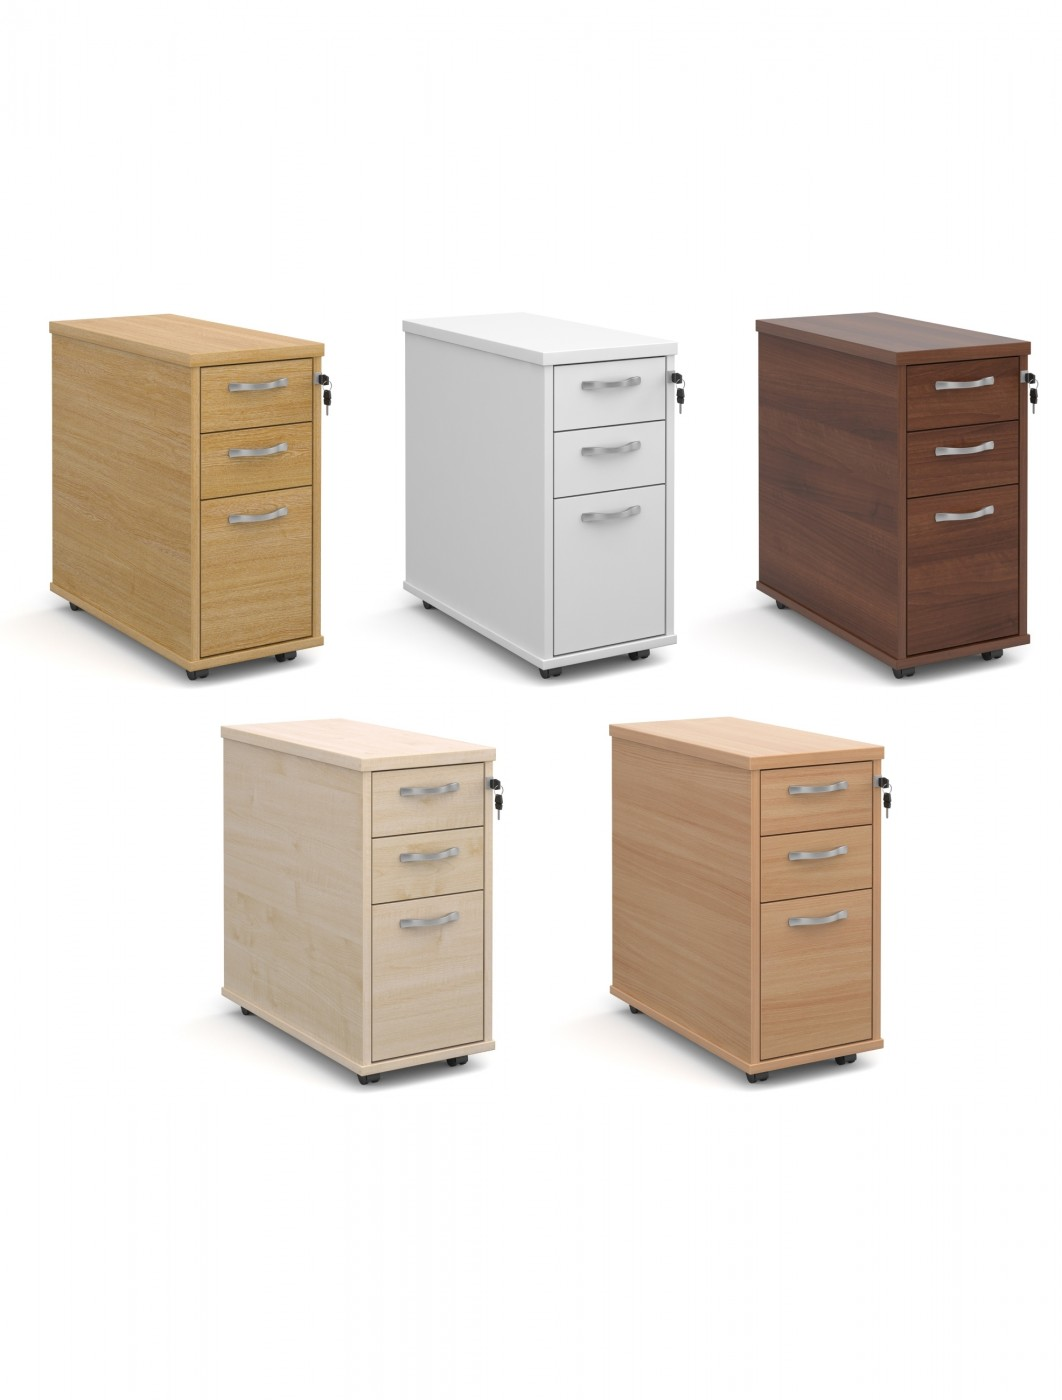 Narrow Pedestal : Dams Slim Line Mobile Pedestal TNMP with 2 Shallow Drawers and an A4 ...